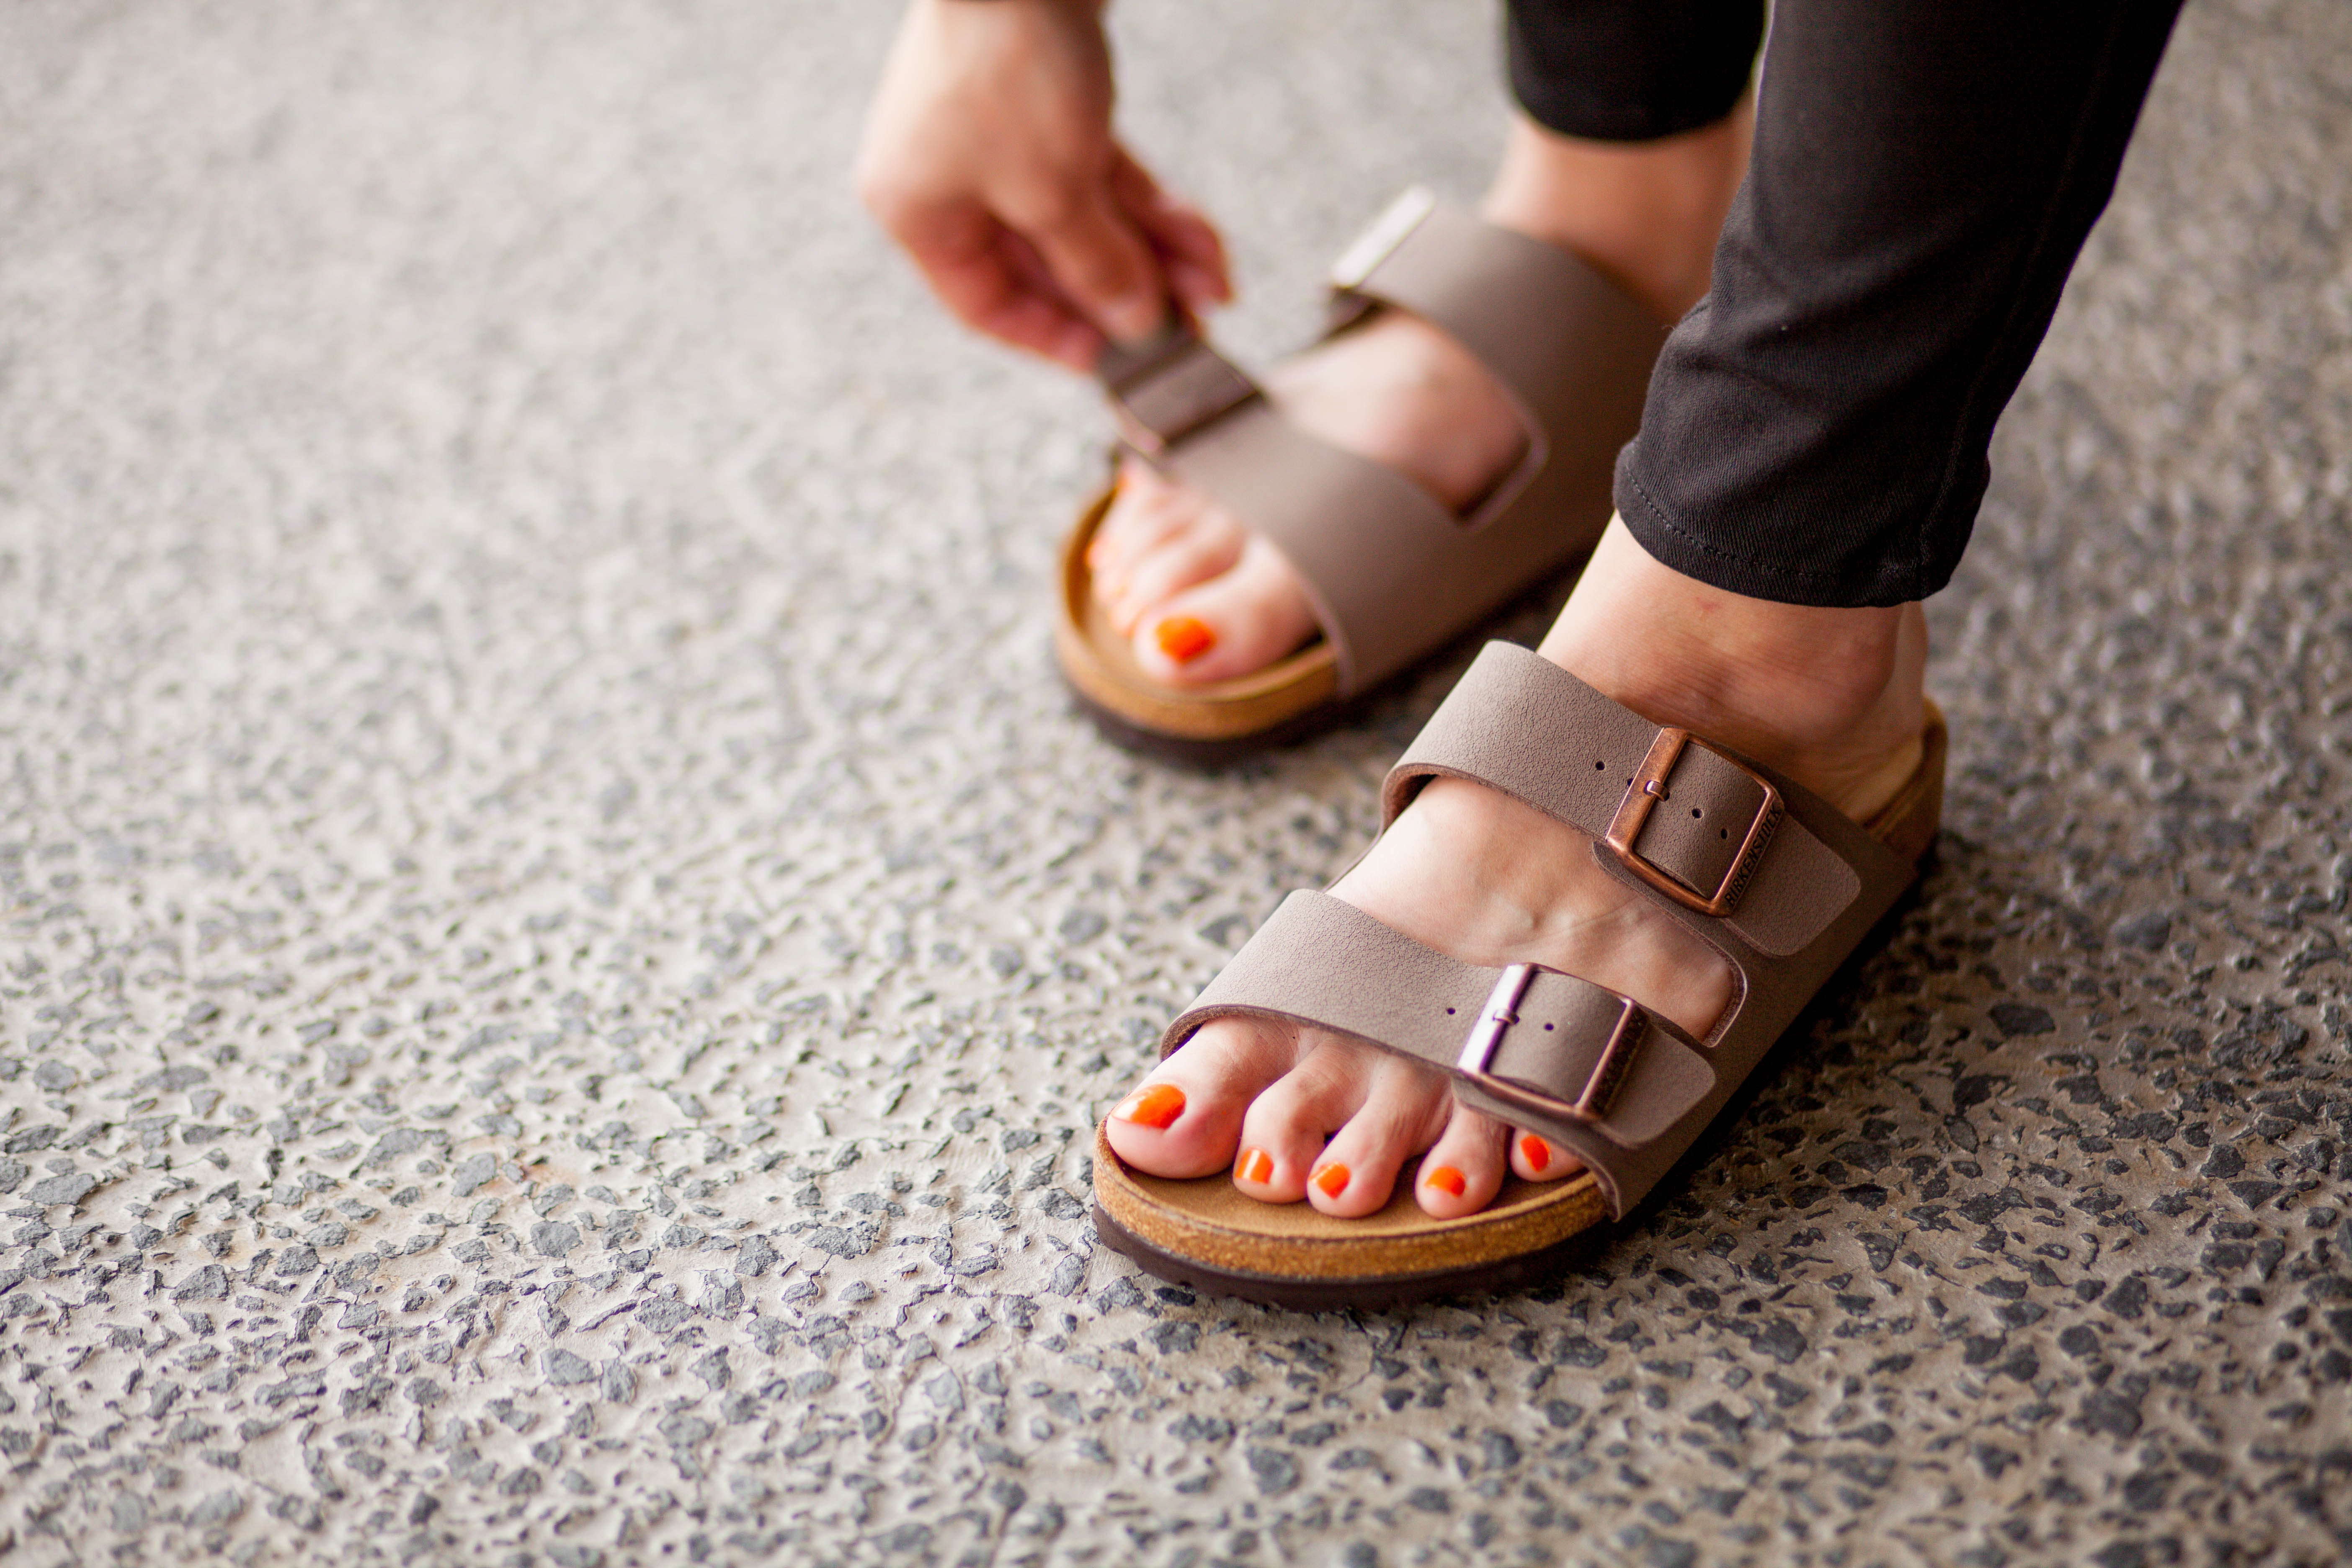 A podiatrist weighs in on popular shoes